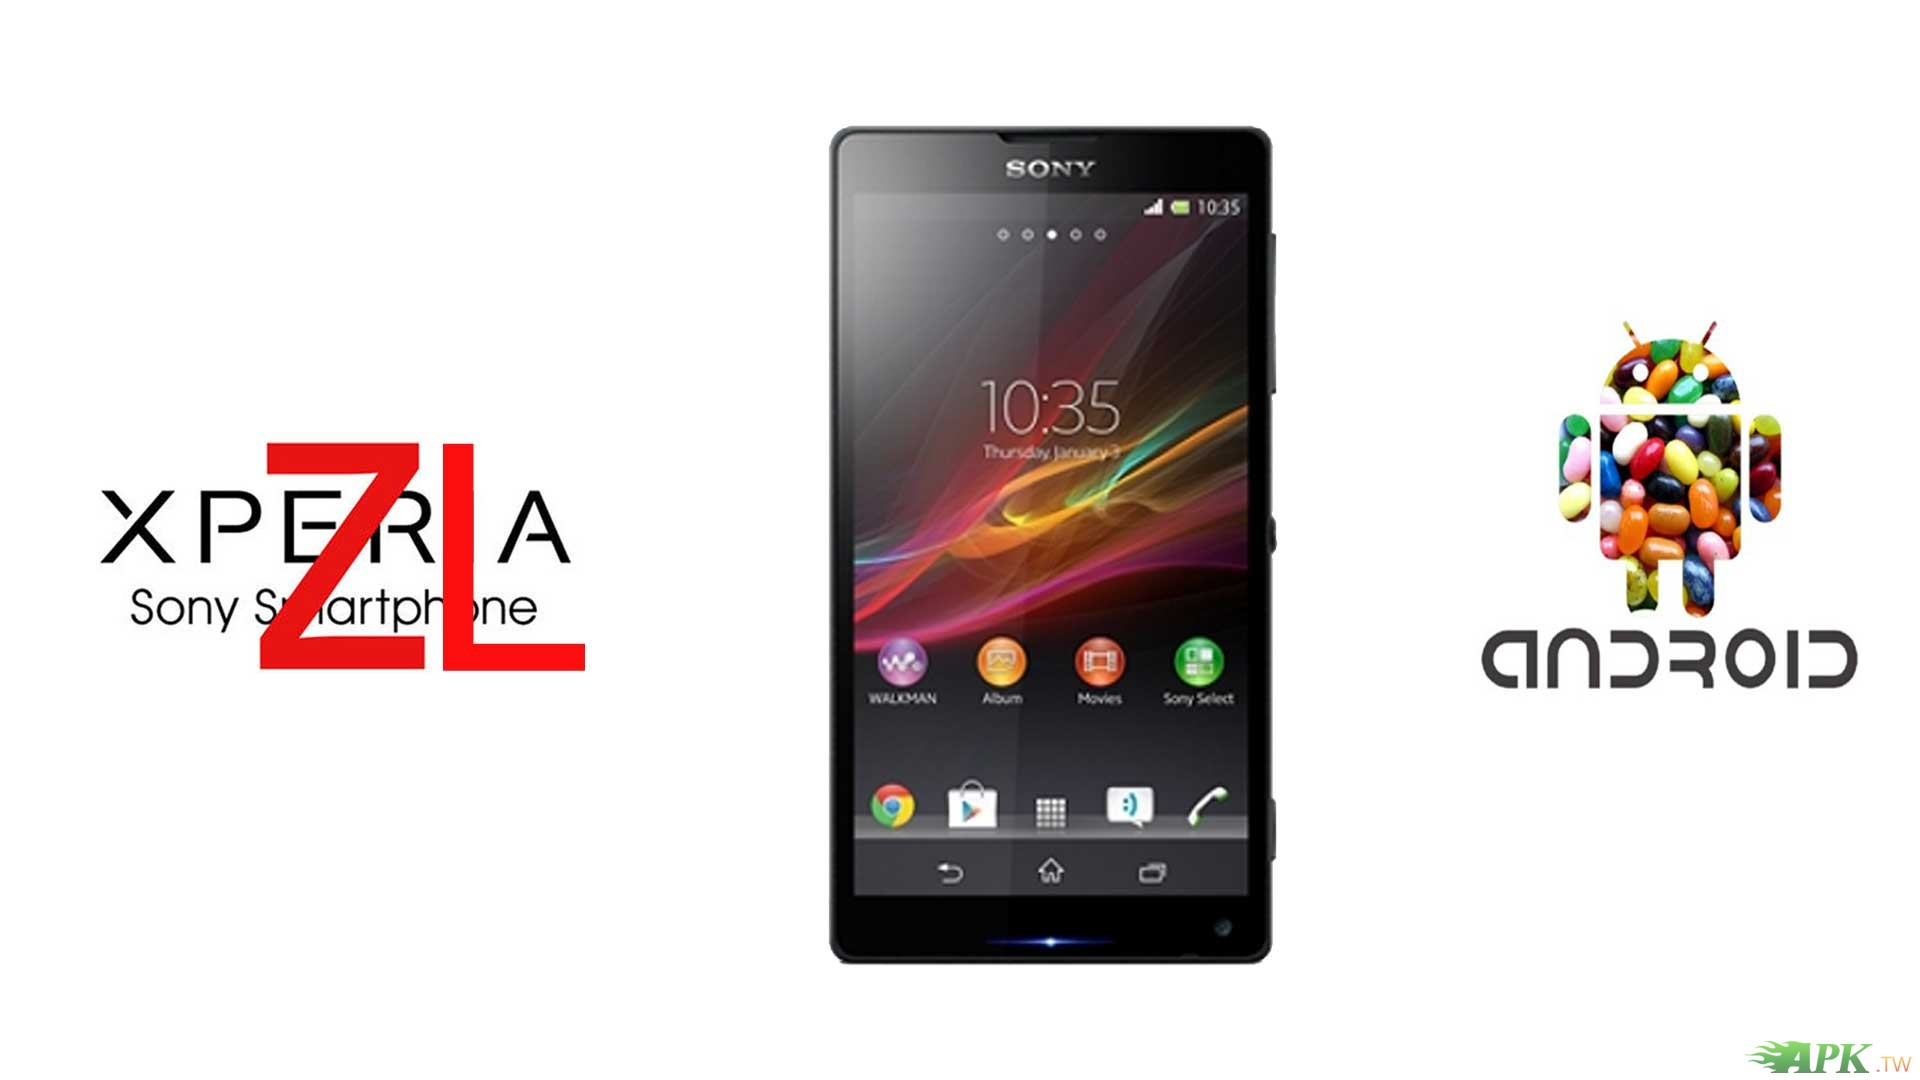 Sony-Xperia-zl-picture.jpg